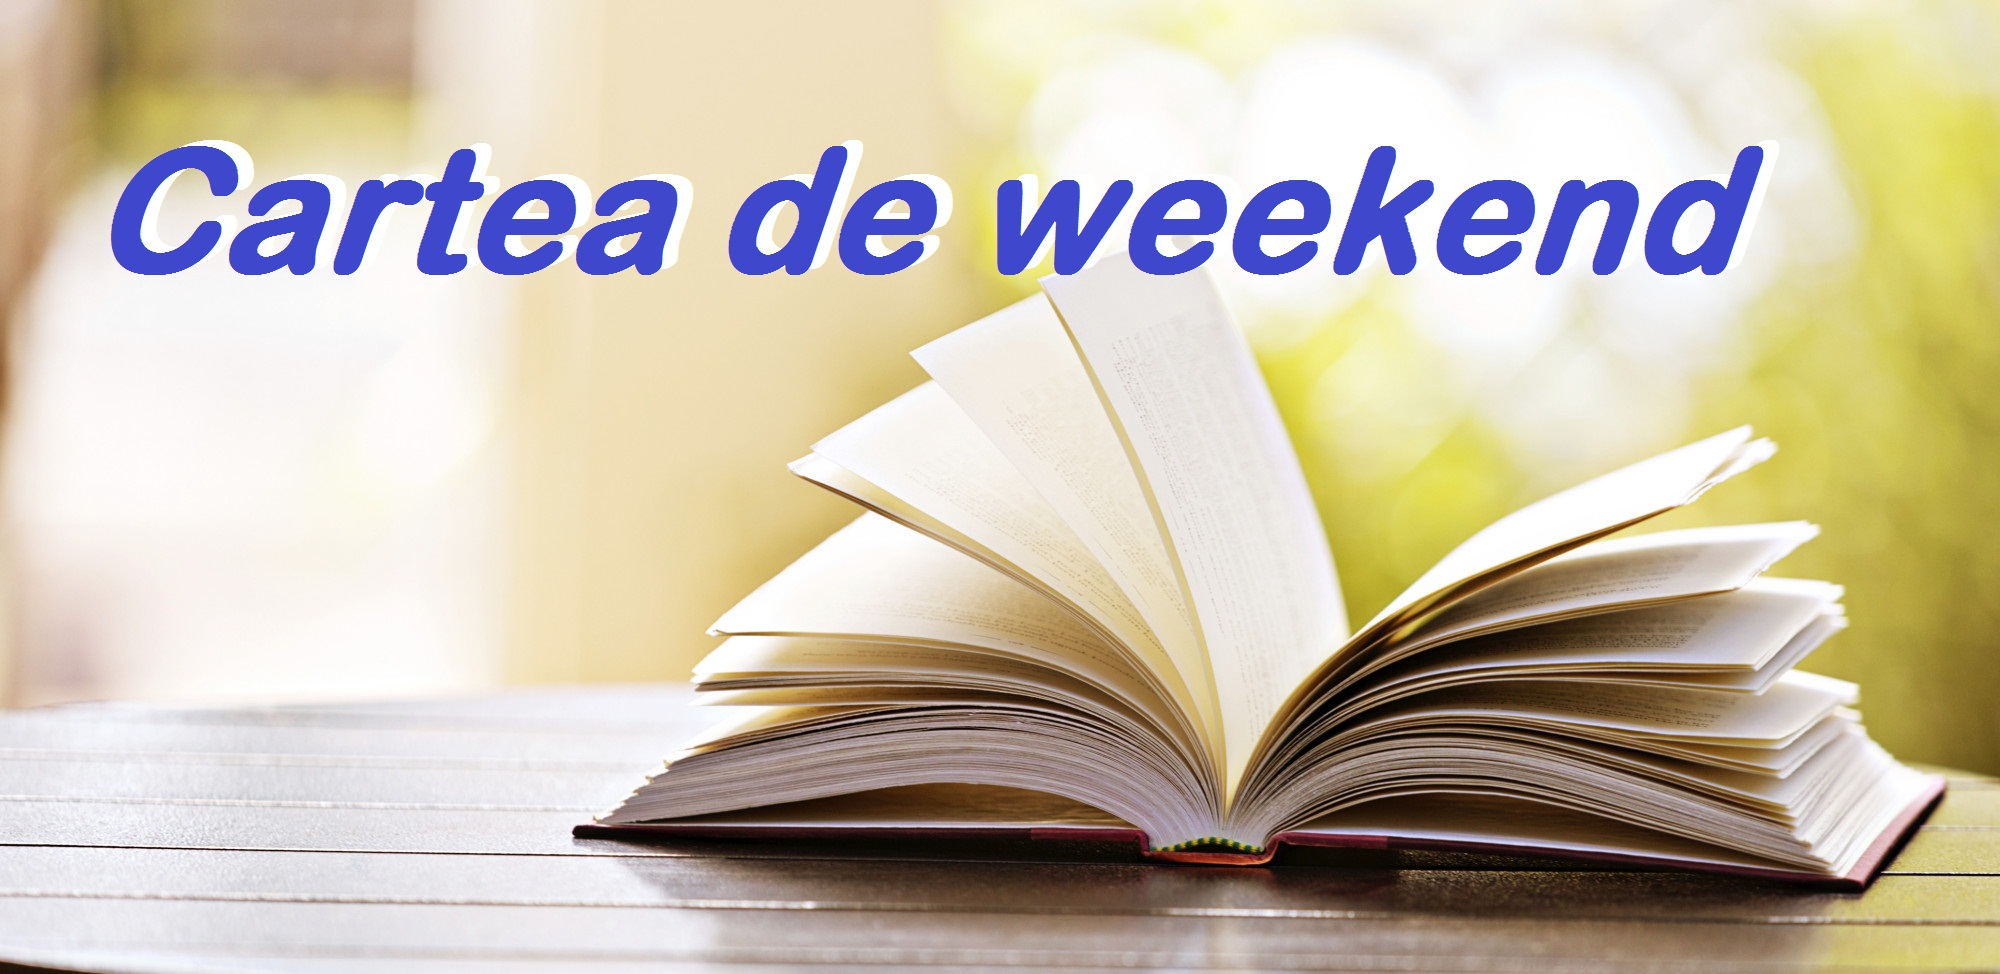 Cartea de week-end